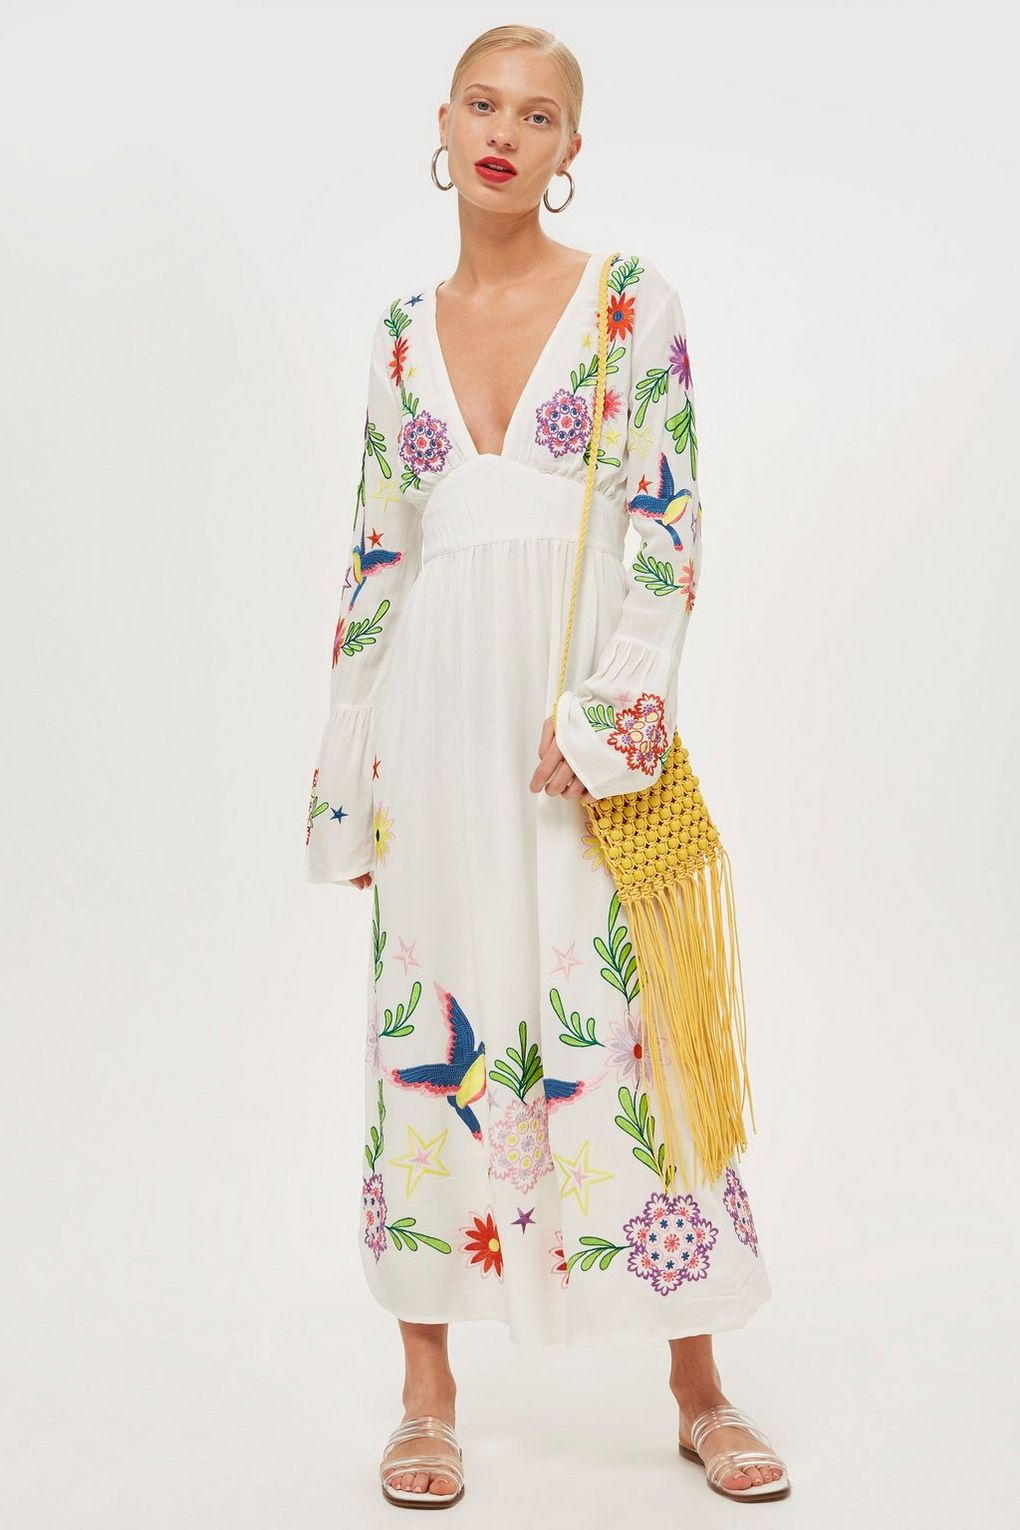 Top 5 summer dresses from Tophop